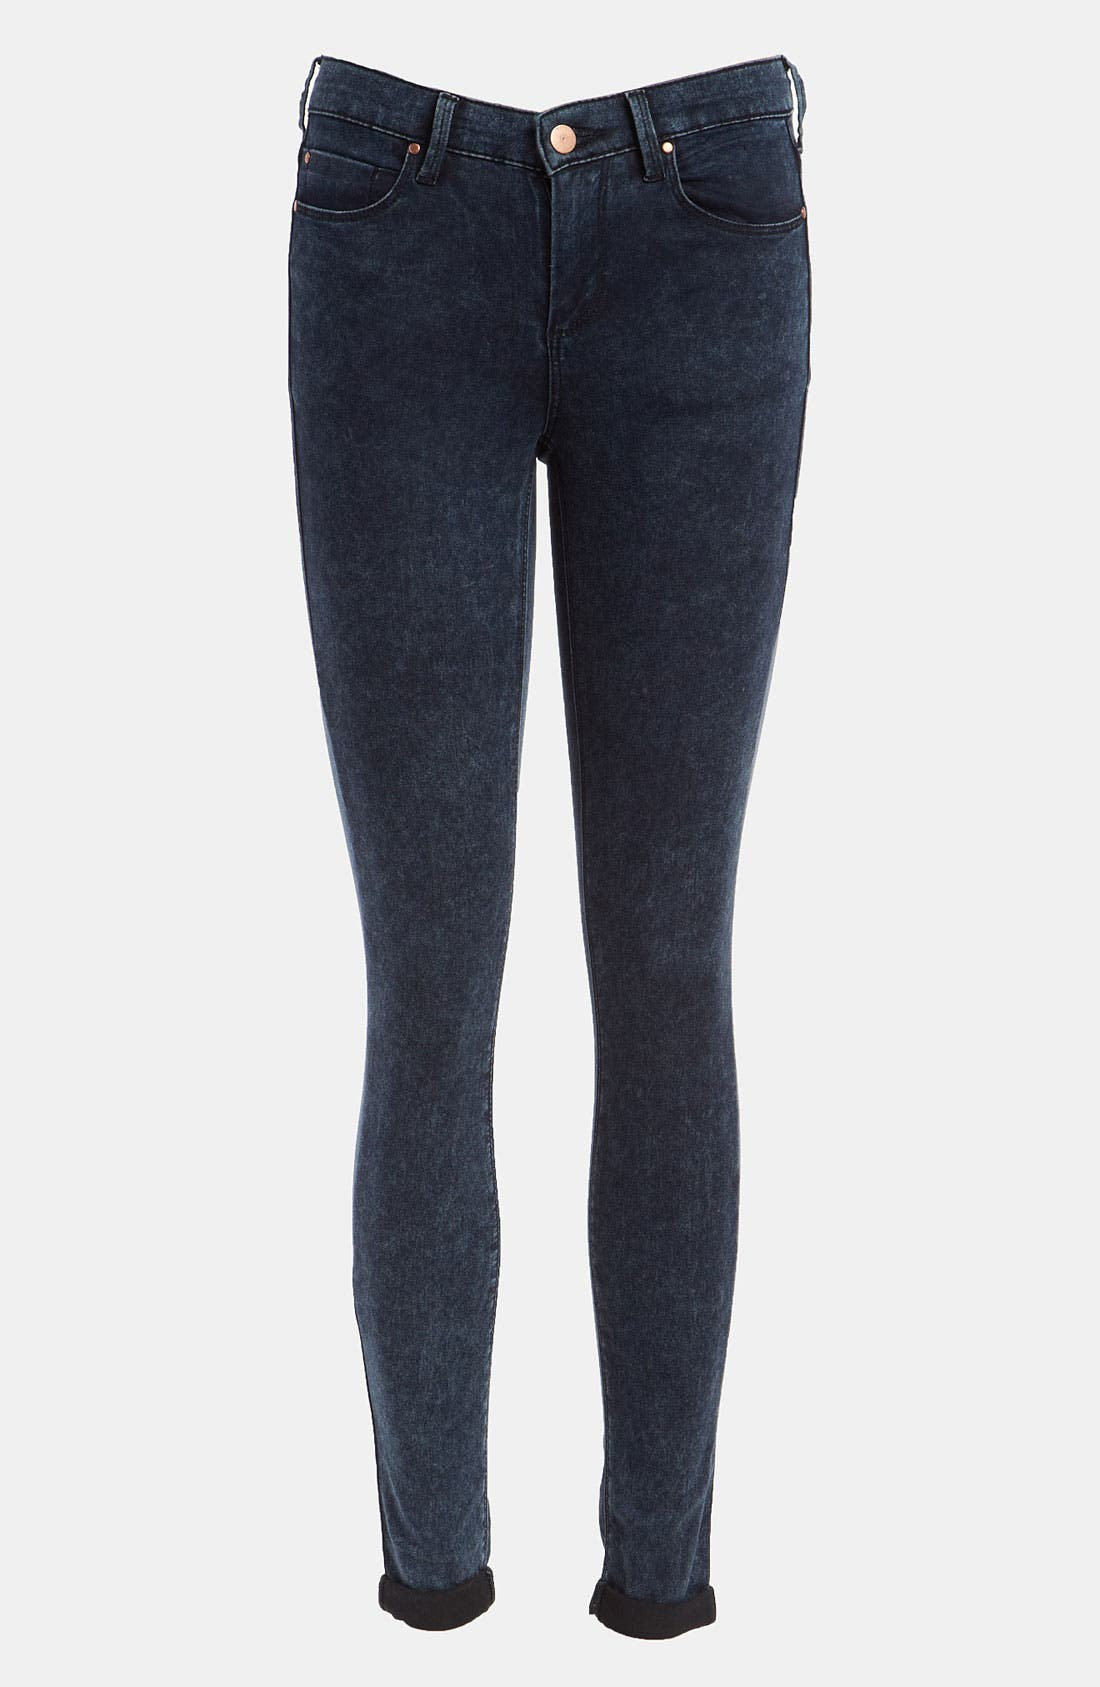 Main Image - Topshop Moto 'Leigh' Acid Wash Skinny Jeans